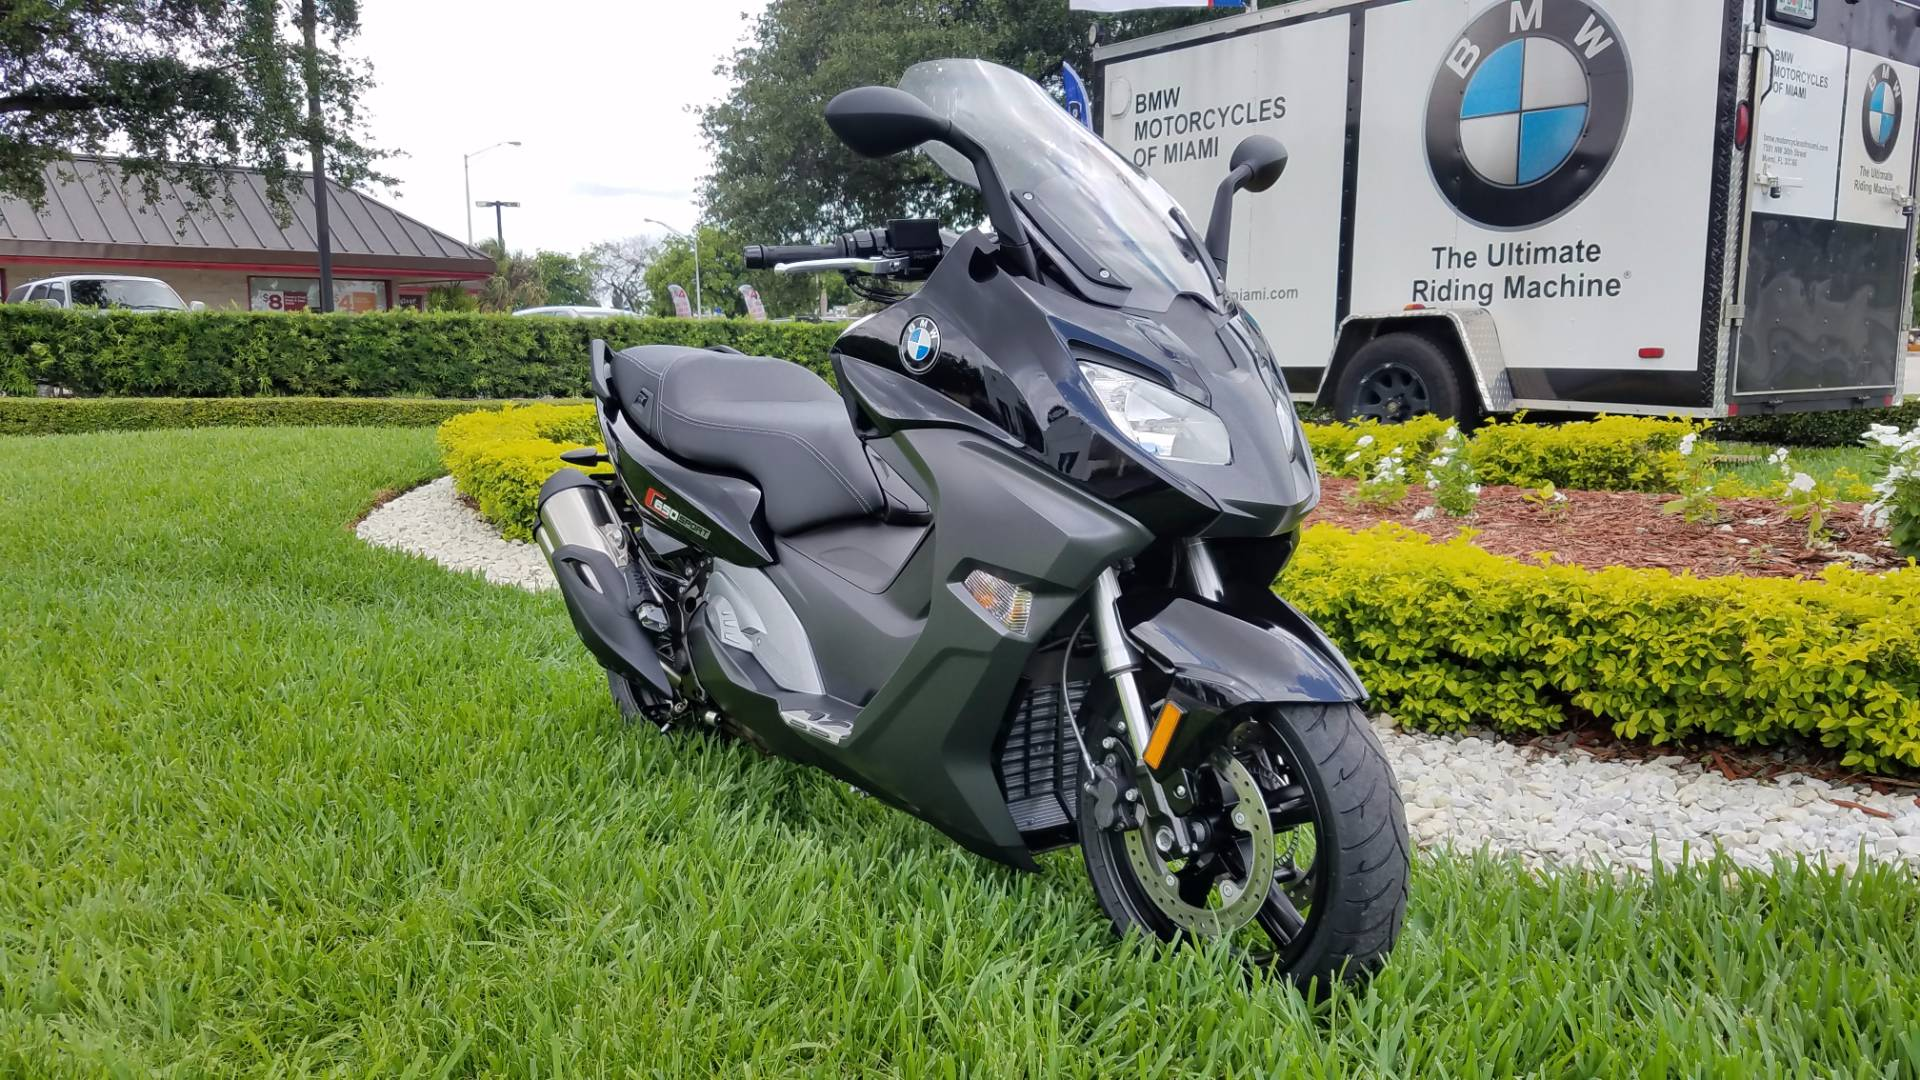 New 2016 BMW C 650 Sport For Sale, BMW C 650 Sport Black For Sale, BMW Motorcycle C 650 Sport, new BMW Scooter, New BMW Motorcycle